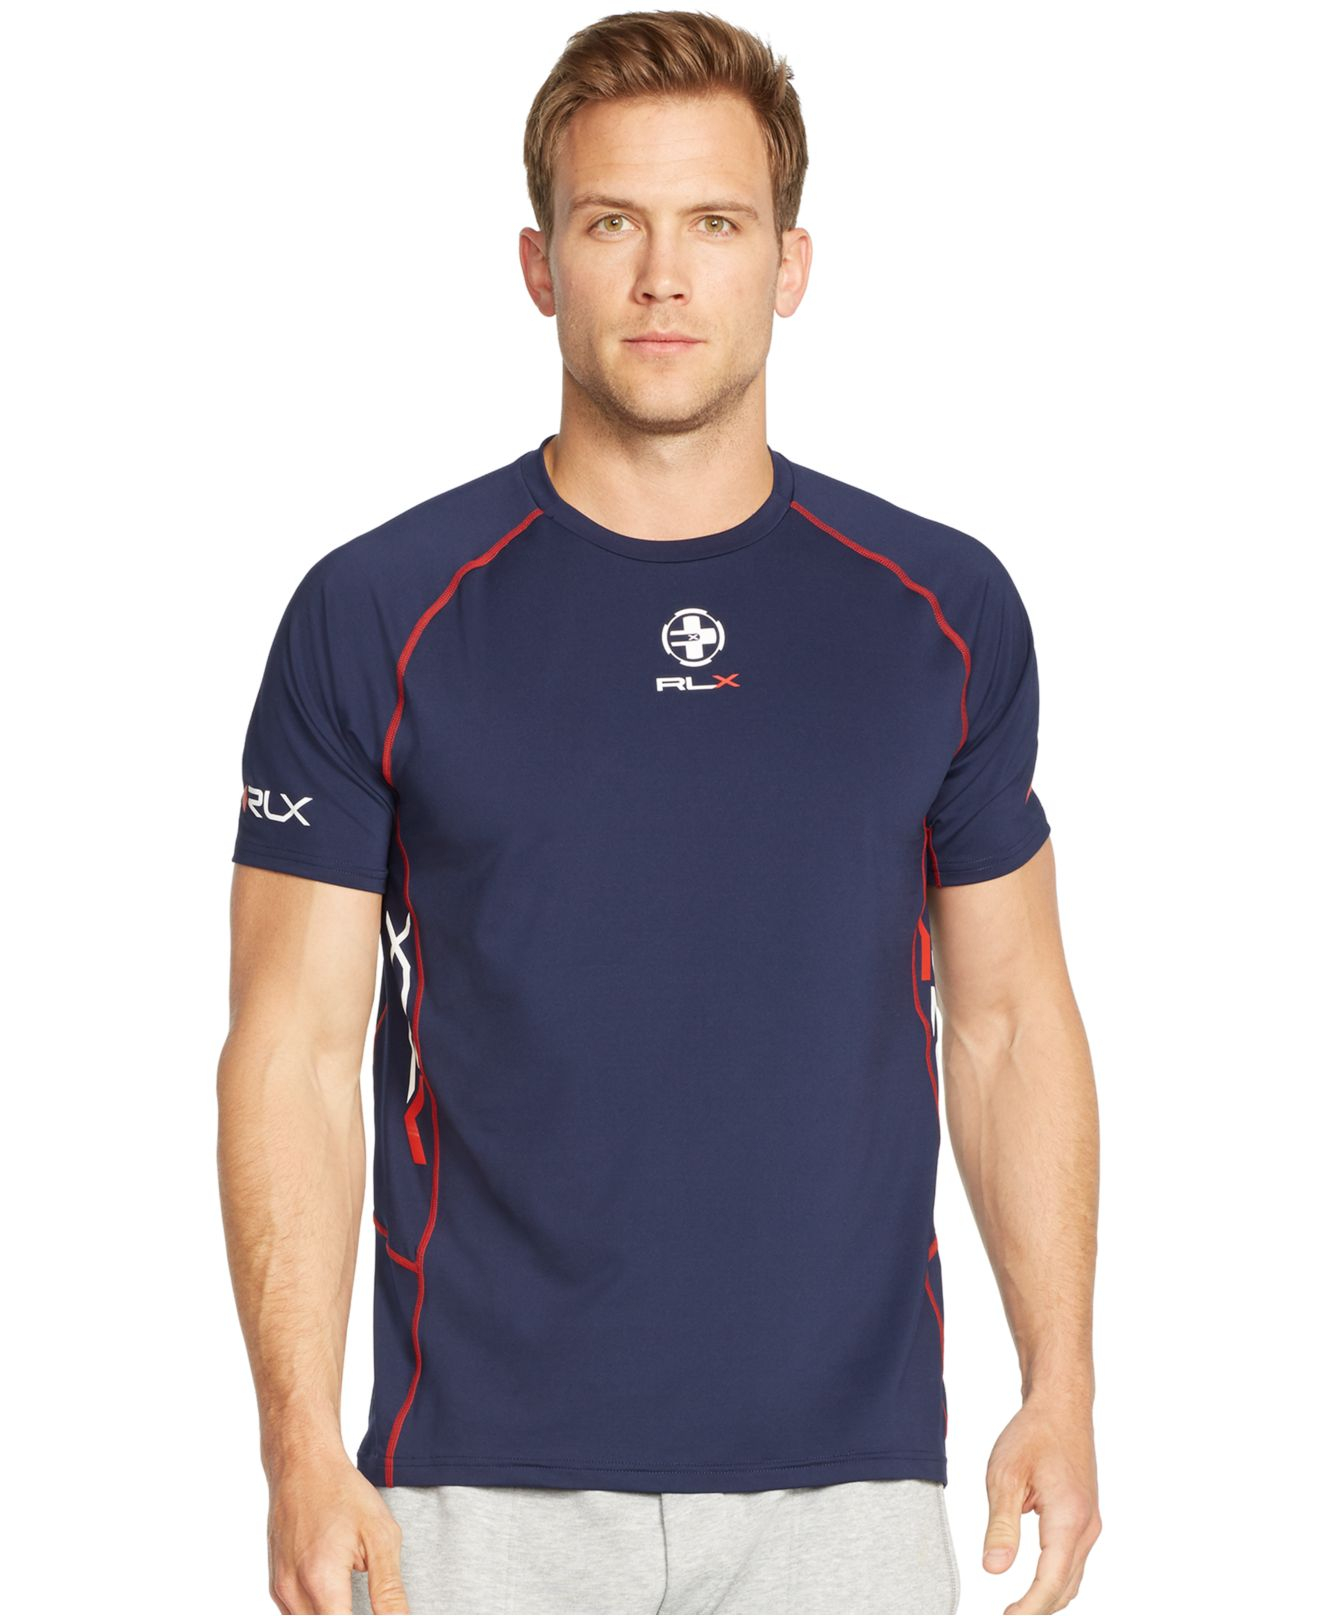 polo ralph lauren rlx active jersey t shirt in blue for. Black Bedroom Furniture Sets. Home Design Ideas